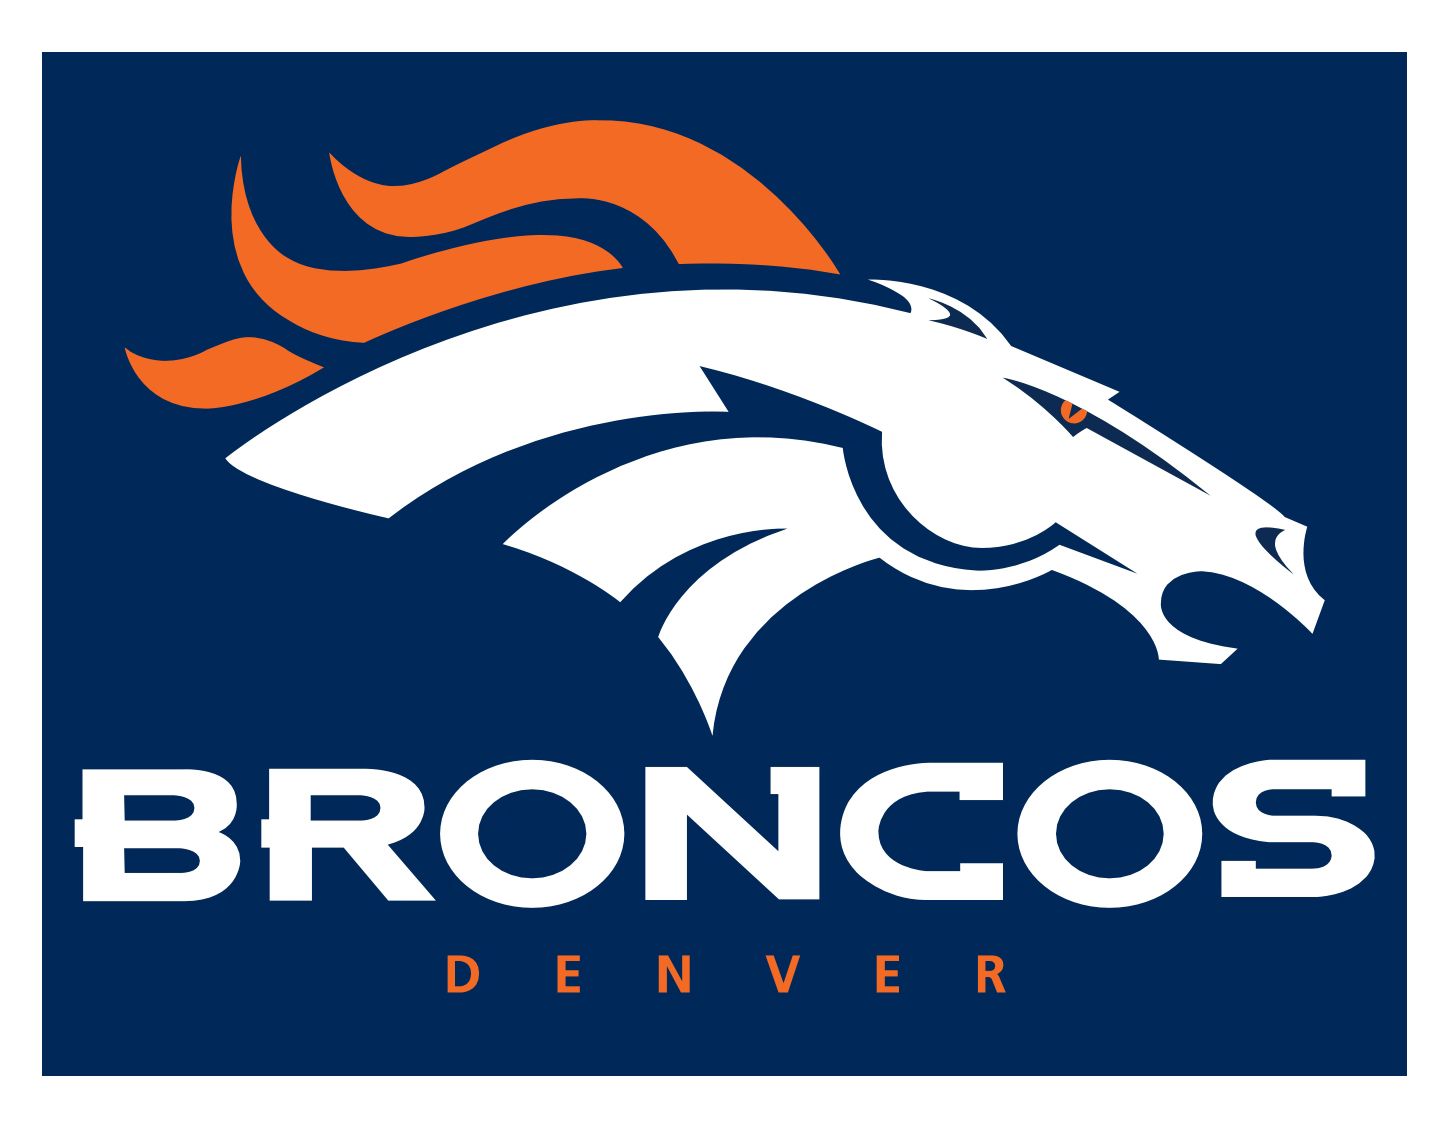 Denver broncos logo all logos world broncos jpg